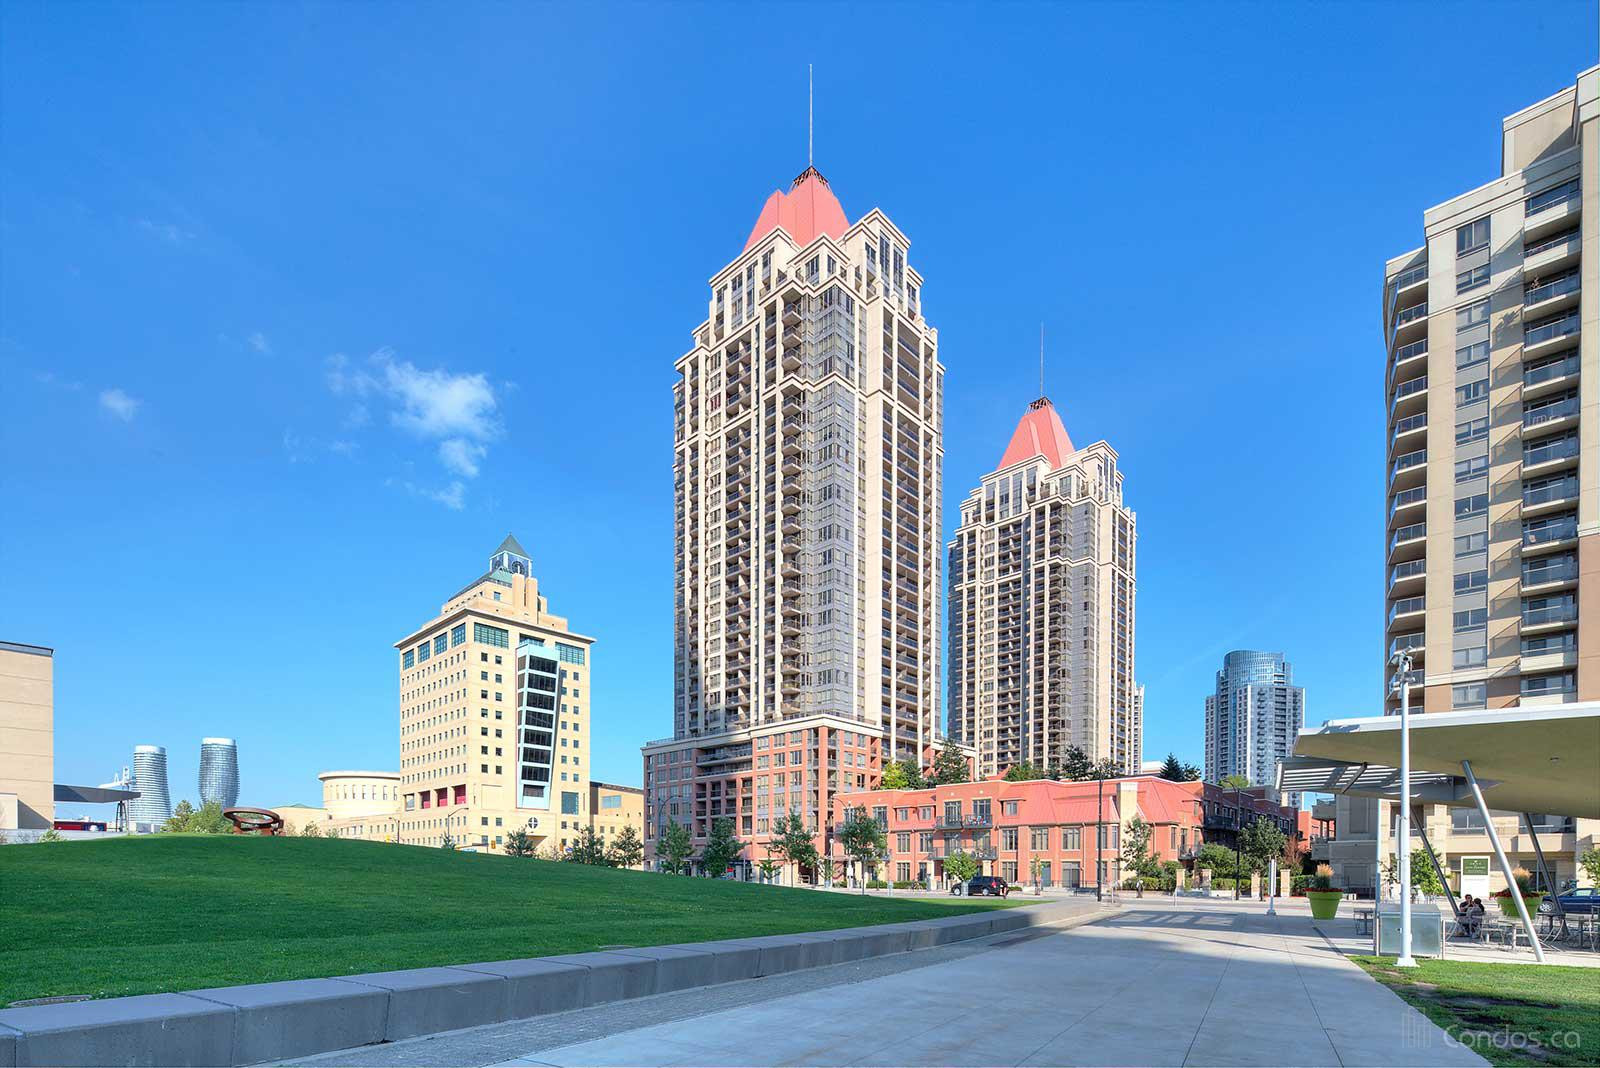 The Capital at 4090 Living Arts Dr, Mississauga 0